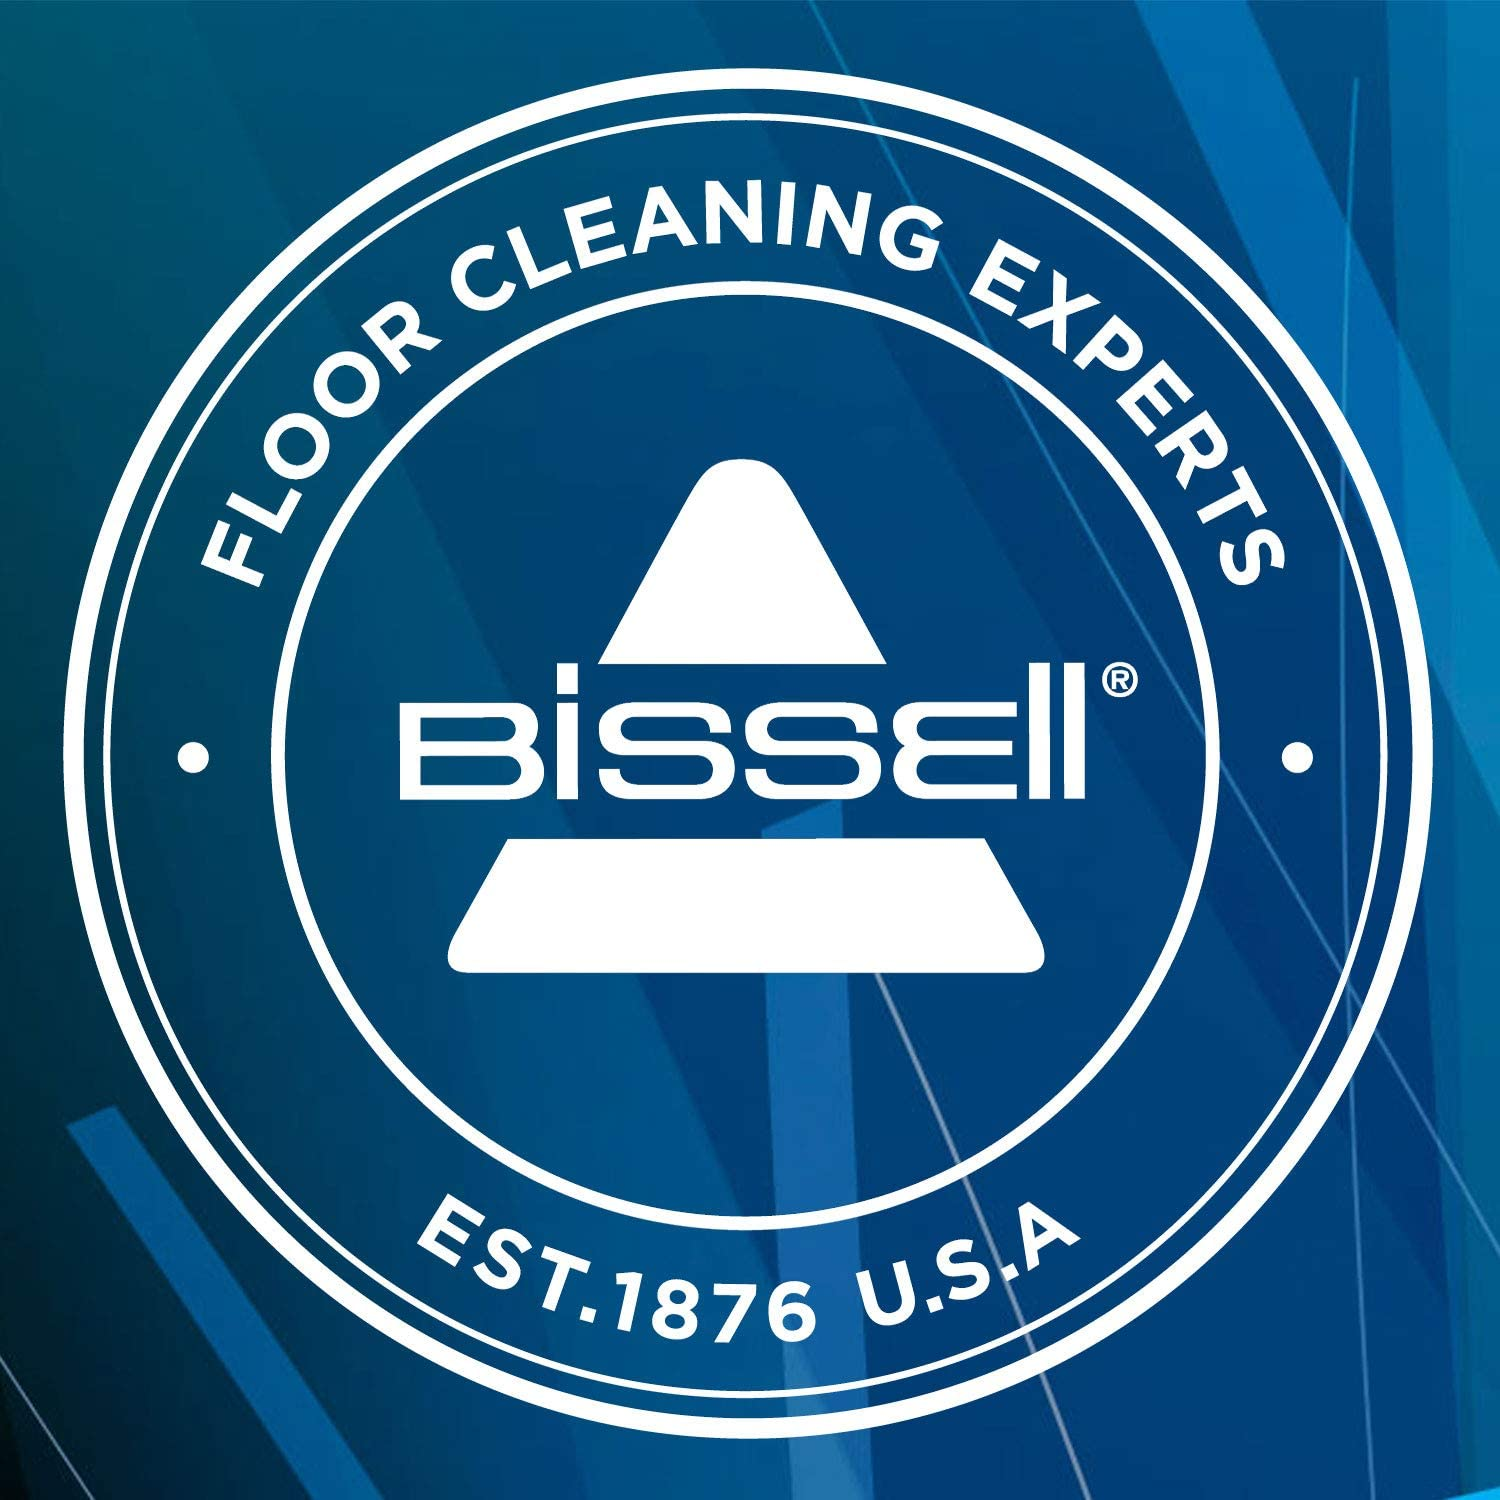 Bissell Demineralised Water Citrus for All Steam Cleaners Citrus Blue White